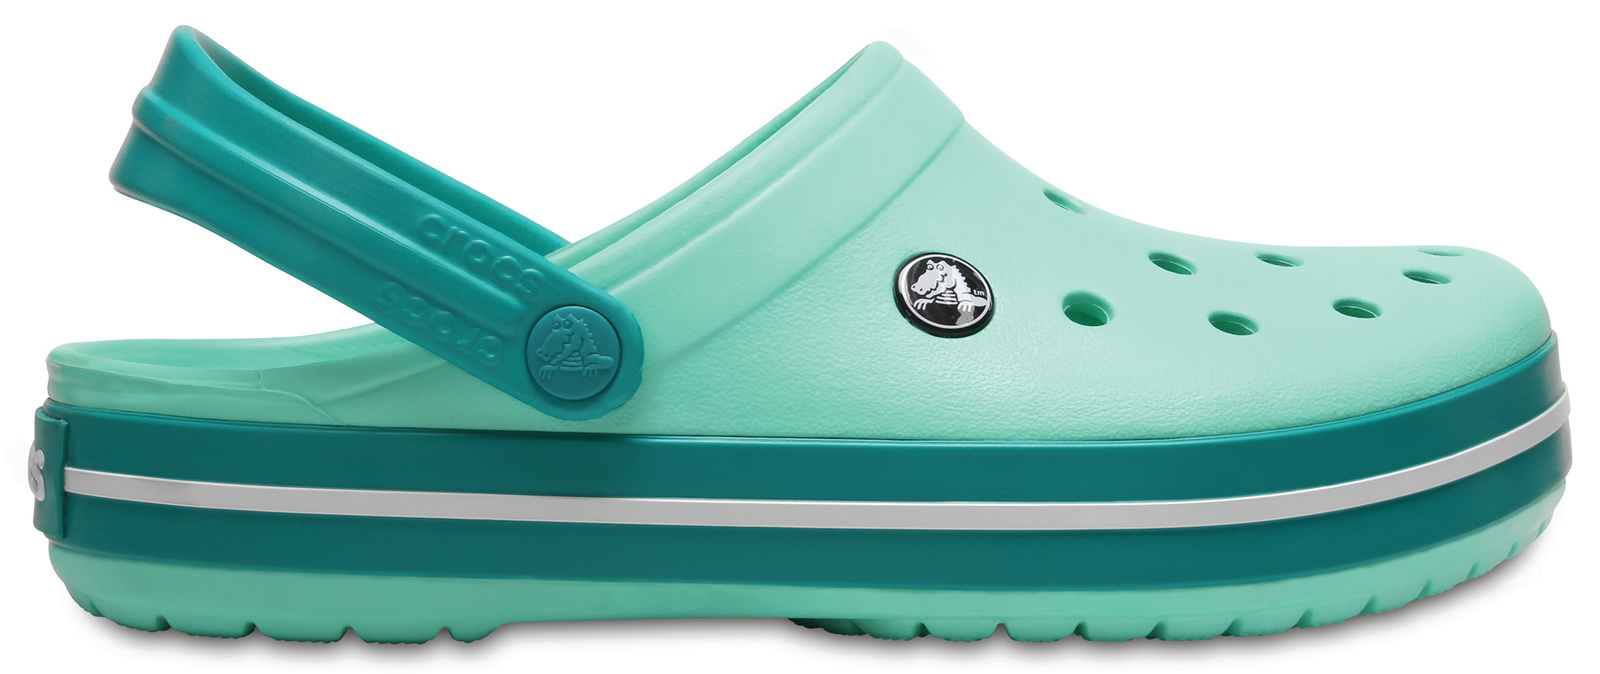 Crocs zelené boty Crocband New Mint/Tropical Teal